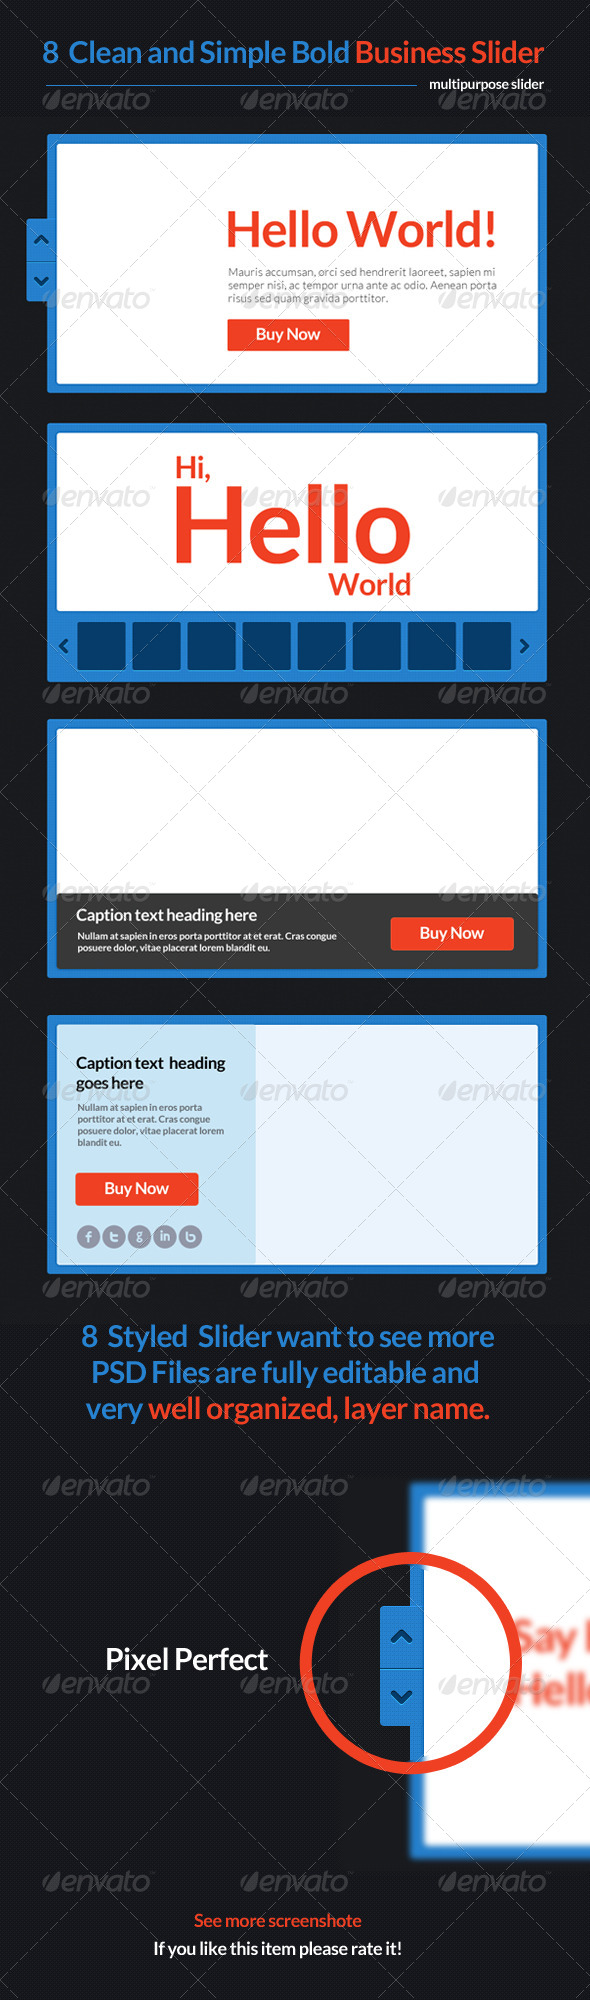 8 Clean and Simple Bold Business Slider  - Sliders & Features Web Elements